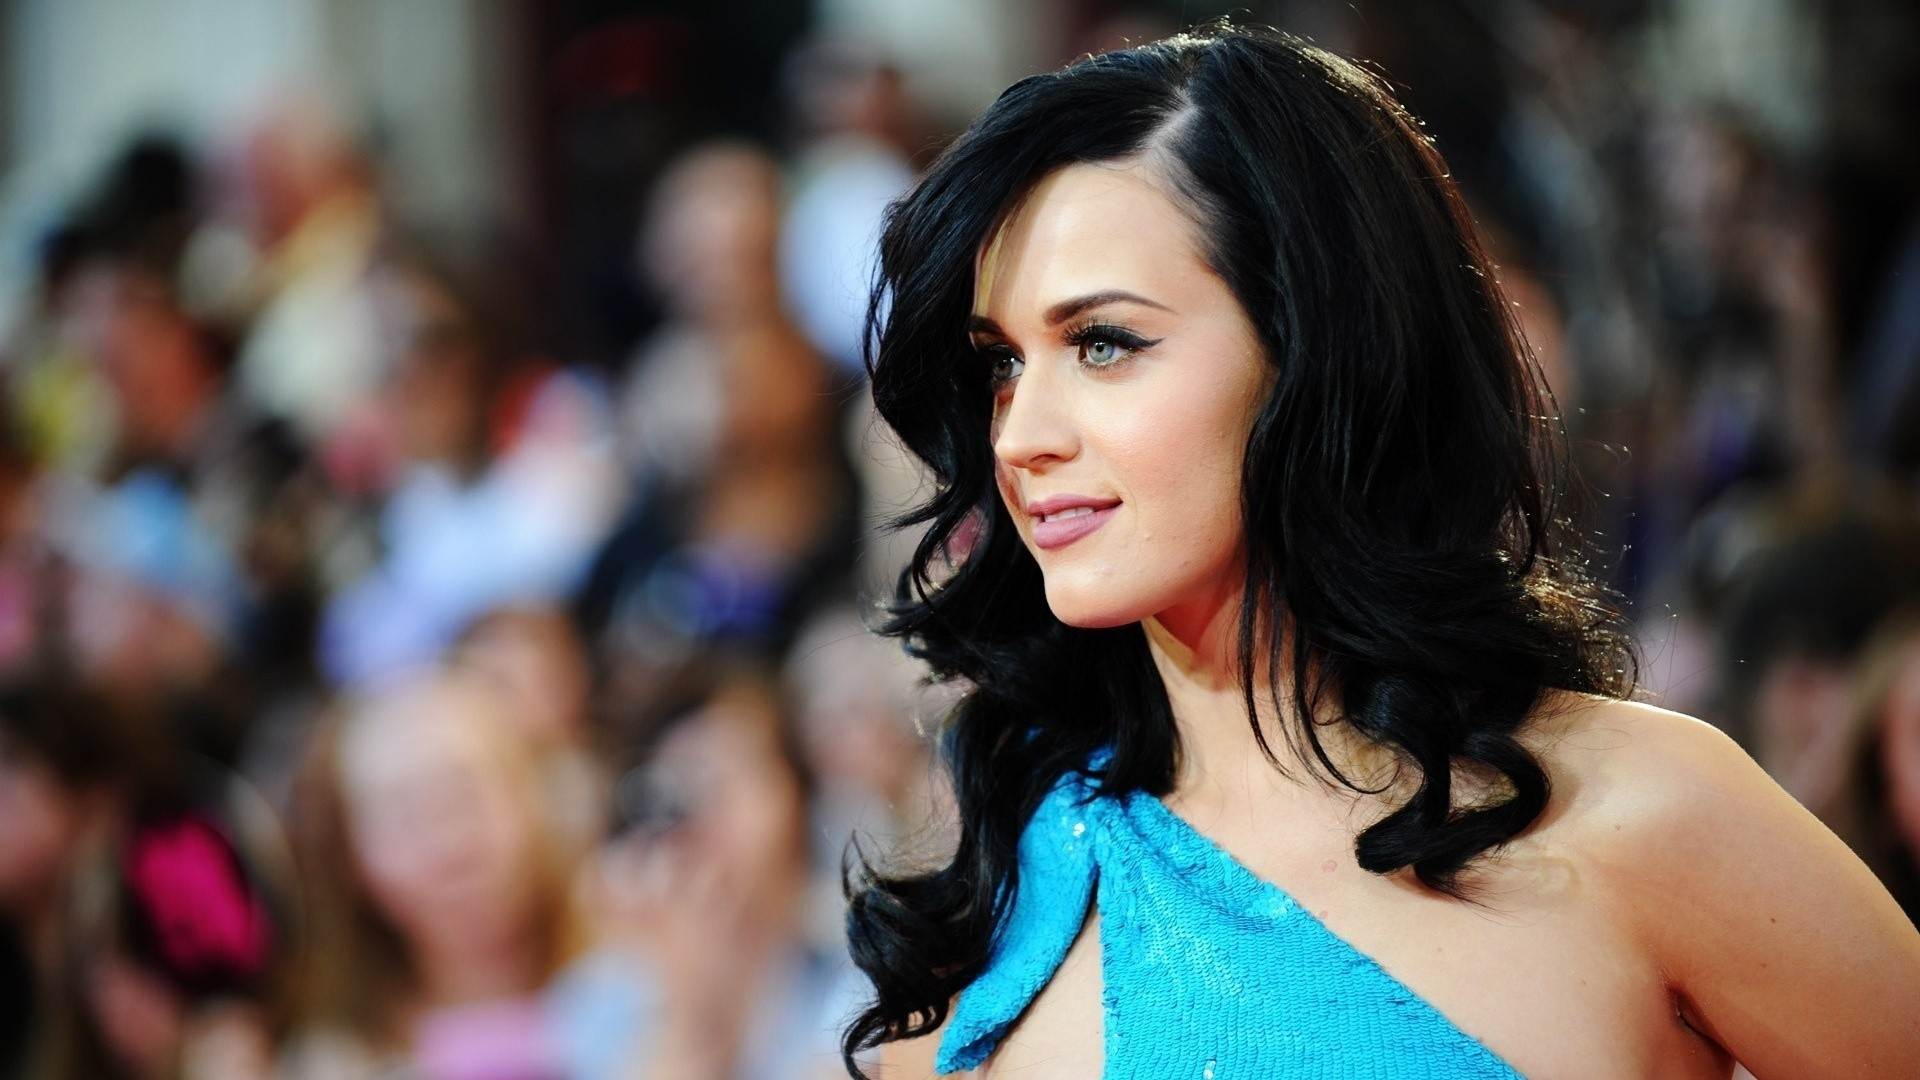 Katy Perry Wallpaper and Background